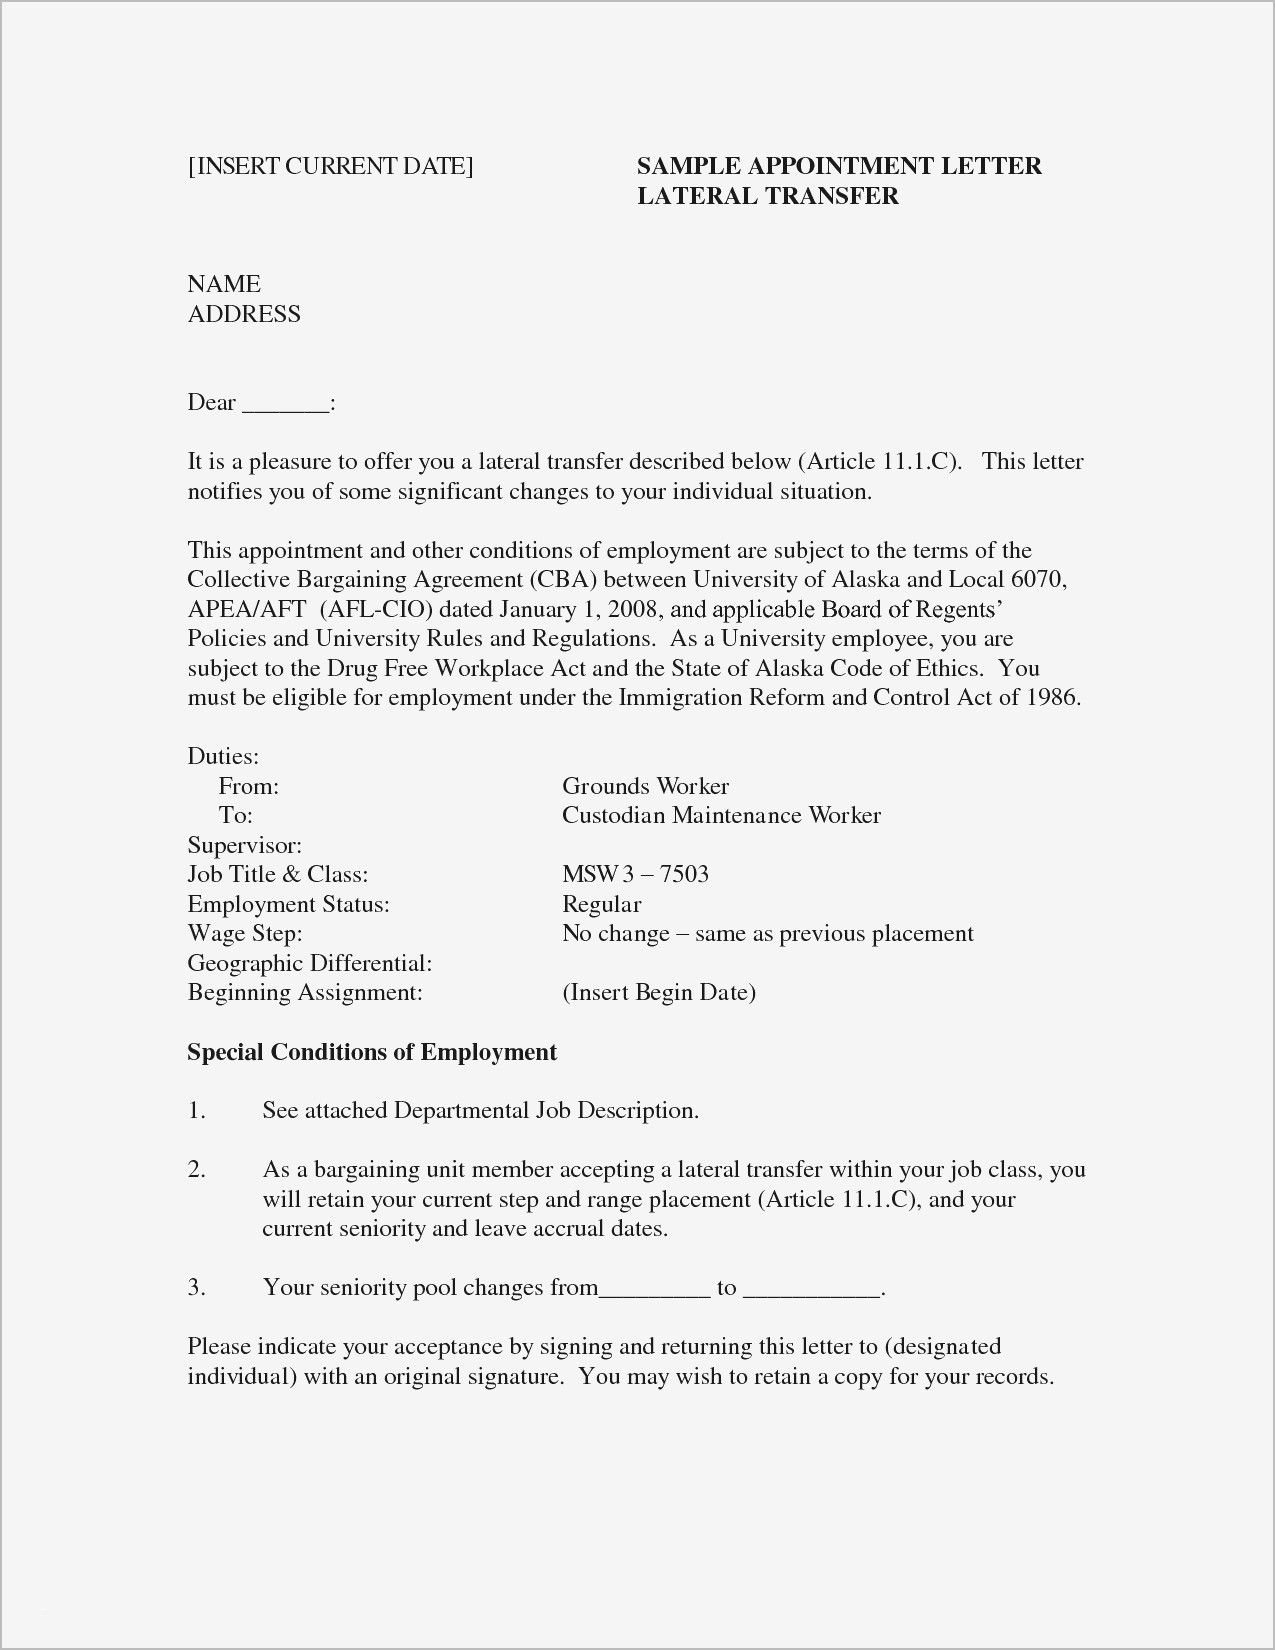 Career Cruising Resume Template - Career Summary Resume Unique 21 Best Professional Summary Resume